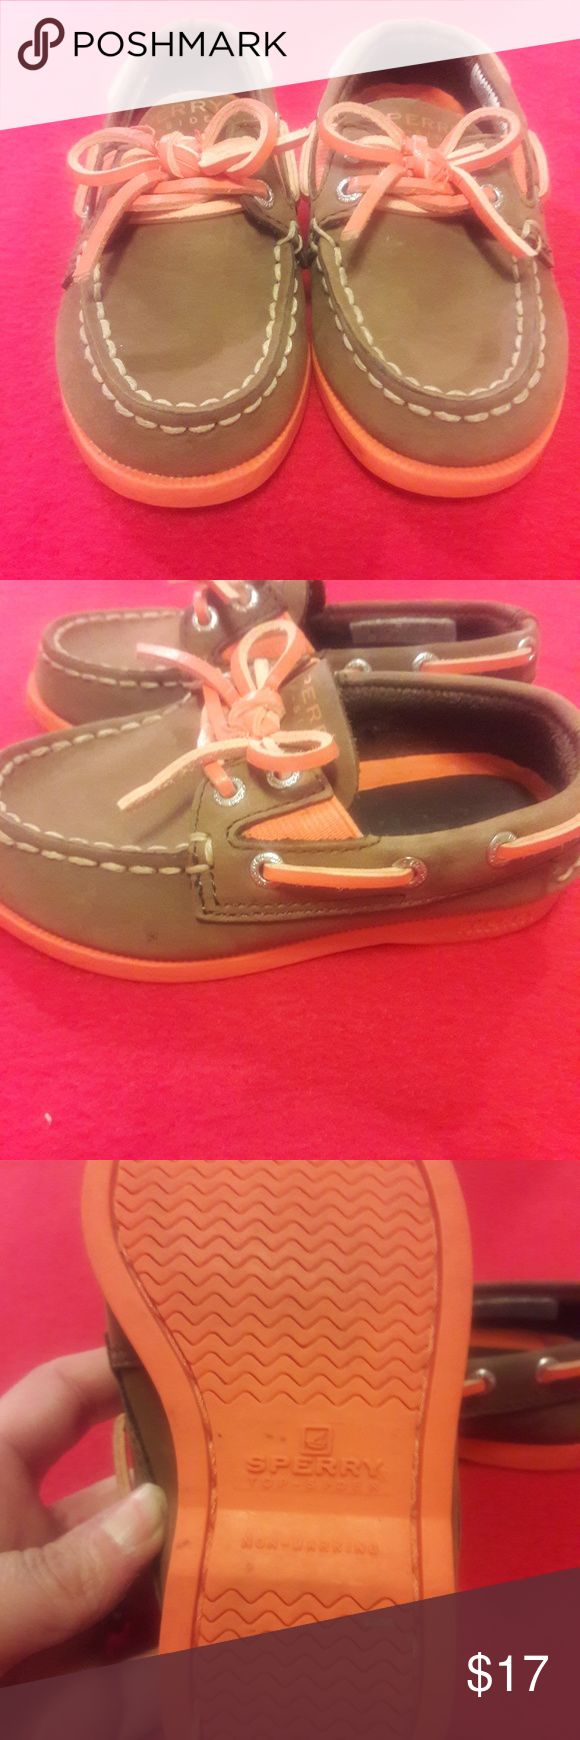 Child's Sperry top siders Size 7 brown and orange Sperry top siders. Has orange ties. Sperry Top-Sider Shoes